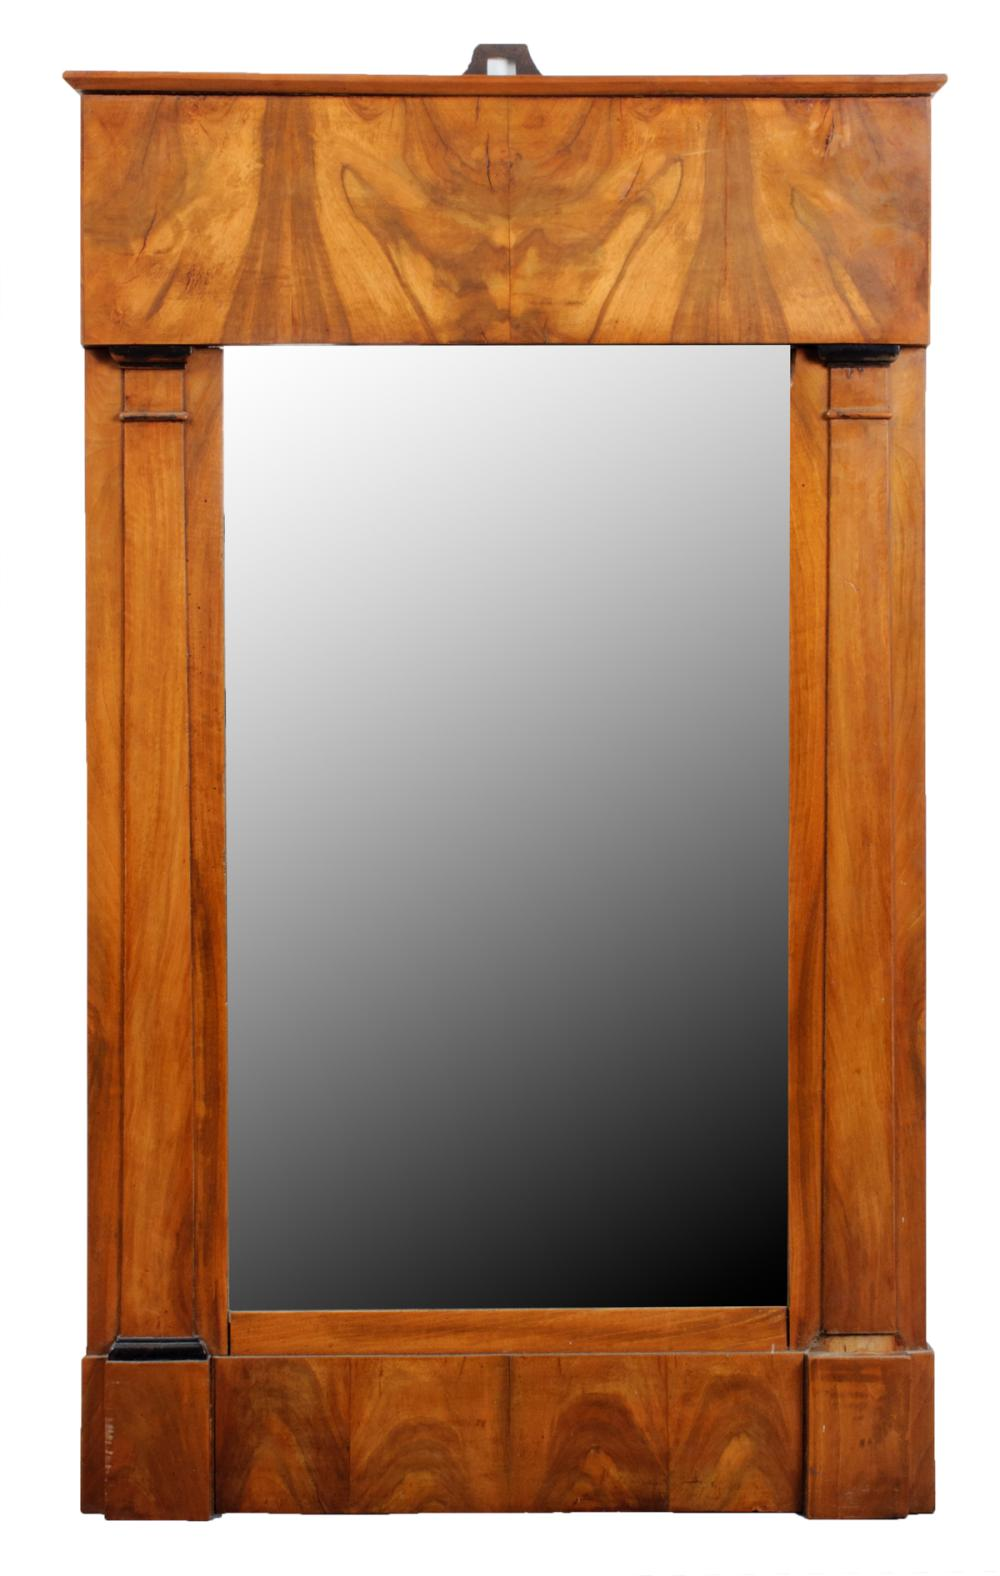 German Biedermeier Fruitwood Wall Mirror